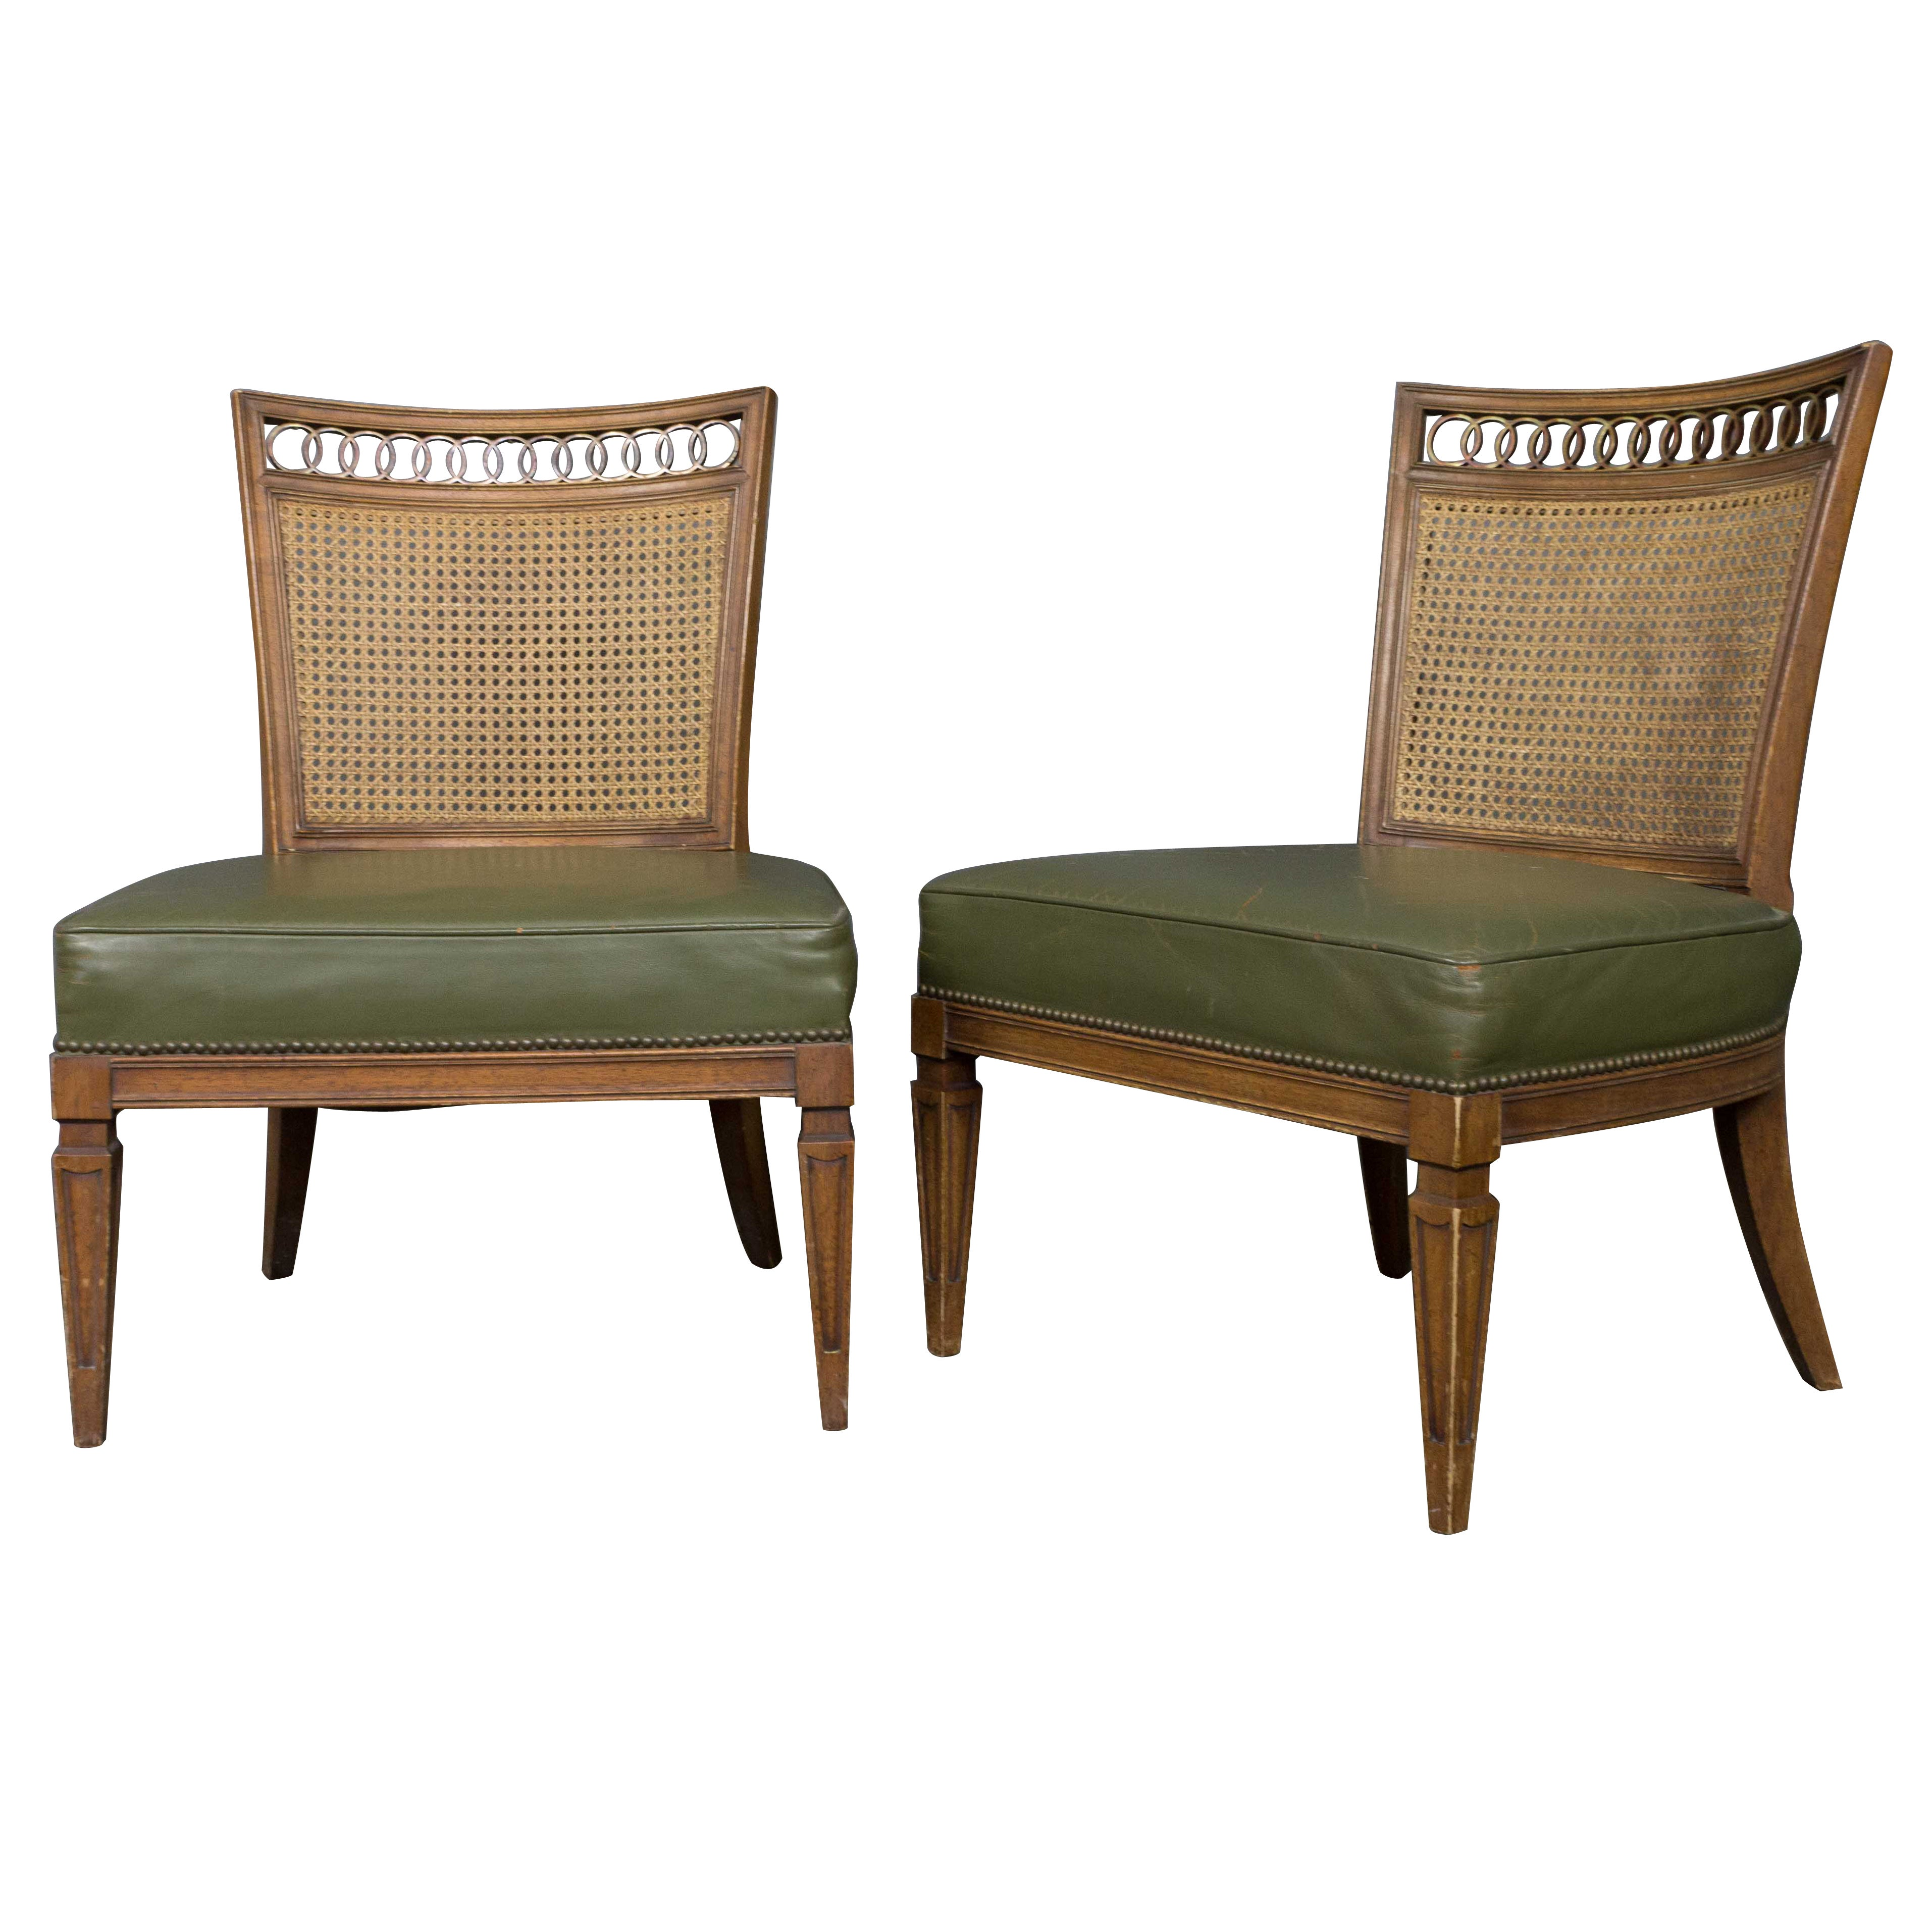 Pair of Italian Mid-Century Modern Side Chairs